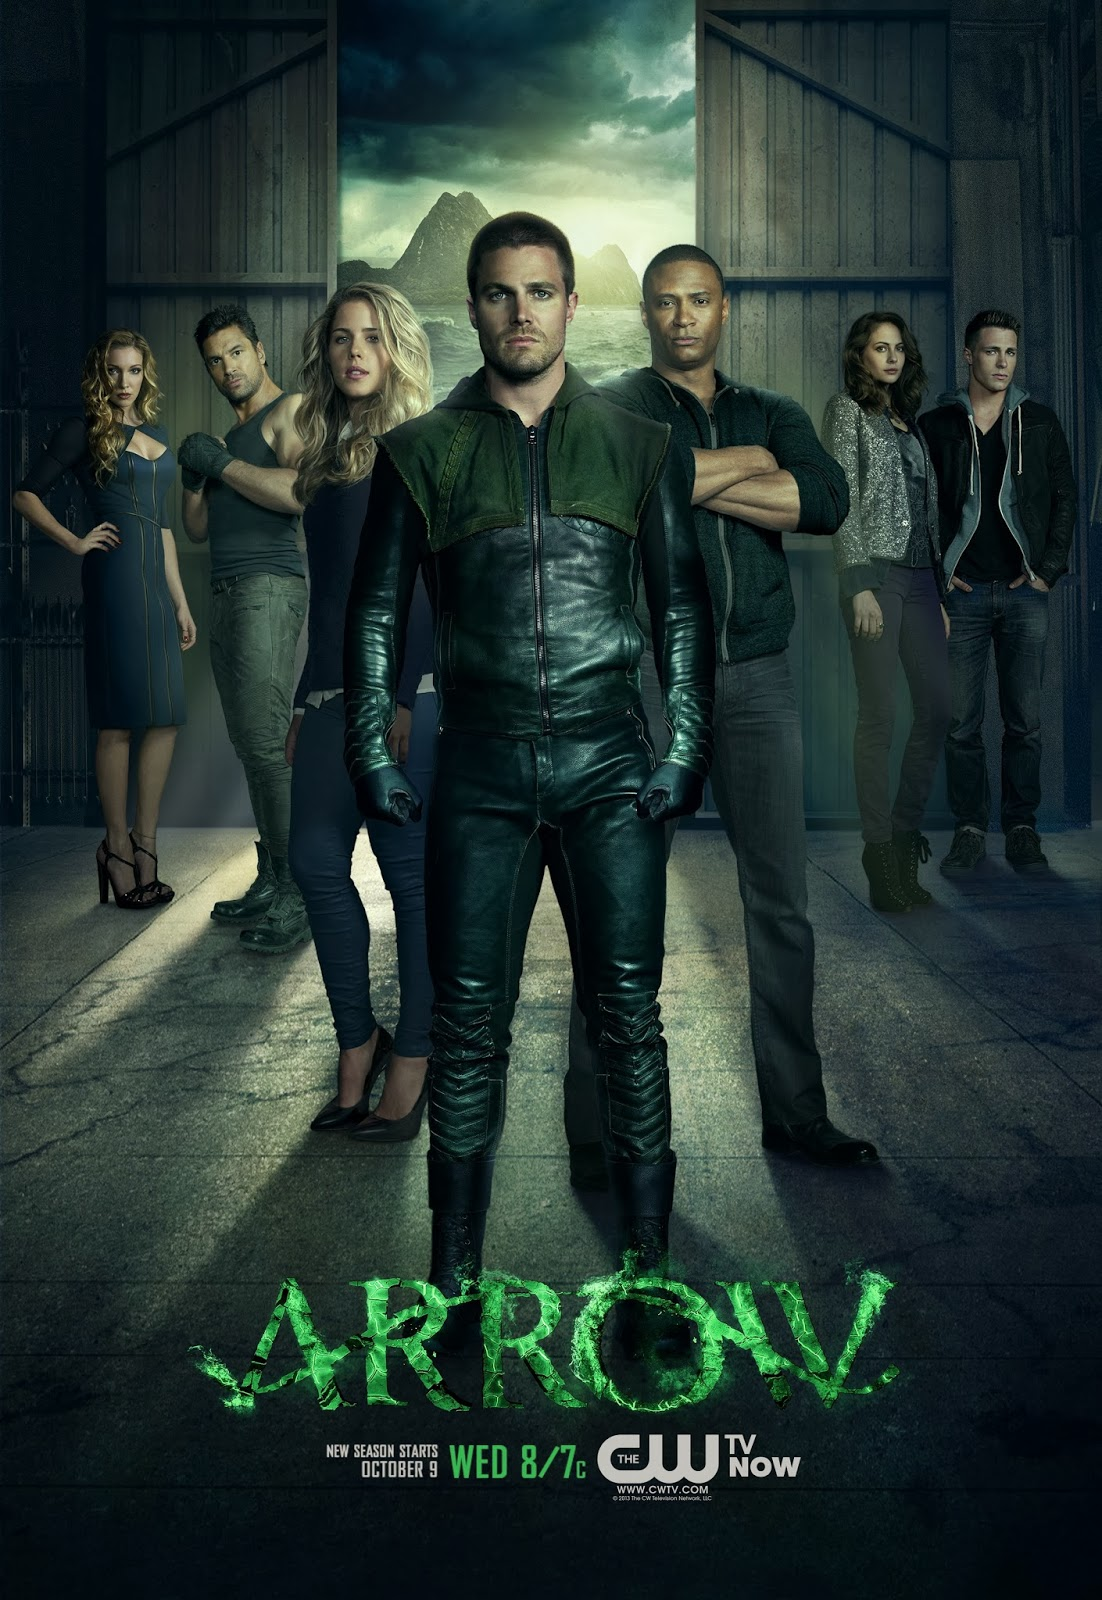 arrow season 2 of tv series download in hd 720p